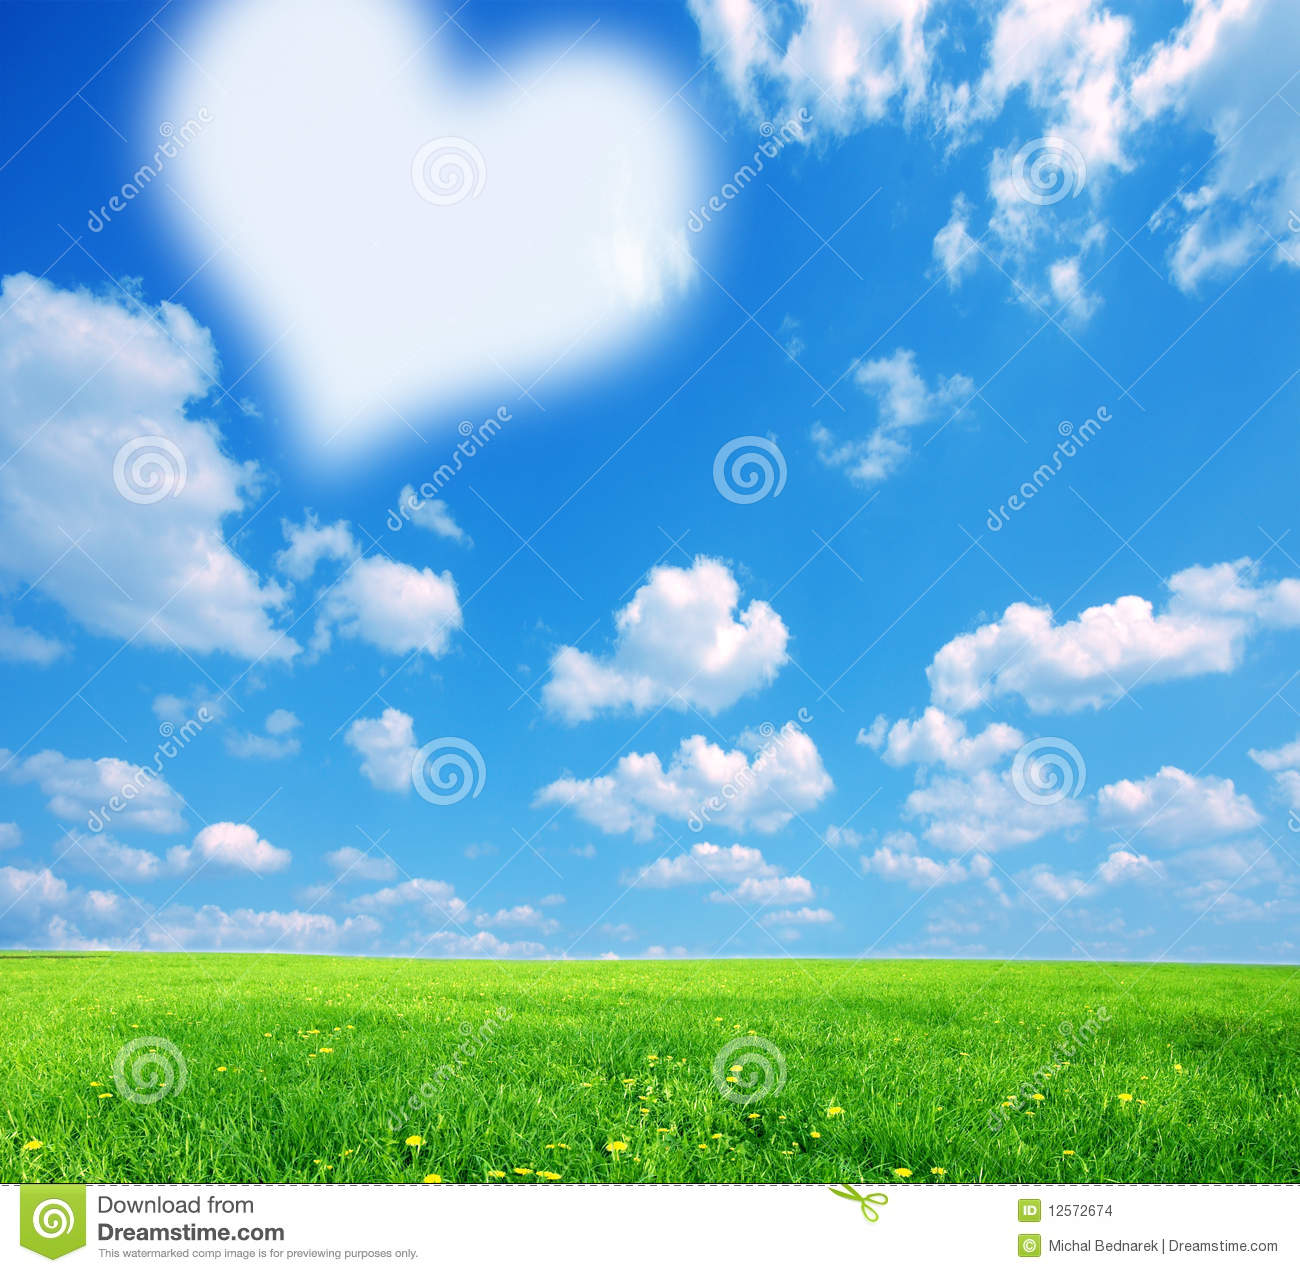 Beautiful Nature Love Wallpaper : Love Nature Background Stock Images - Image: 12572674